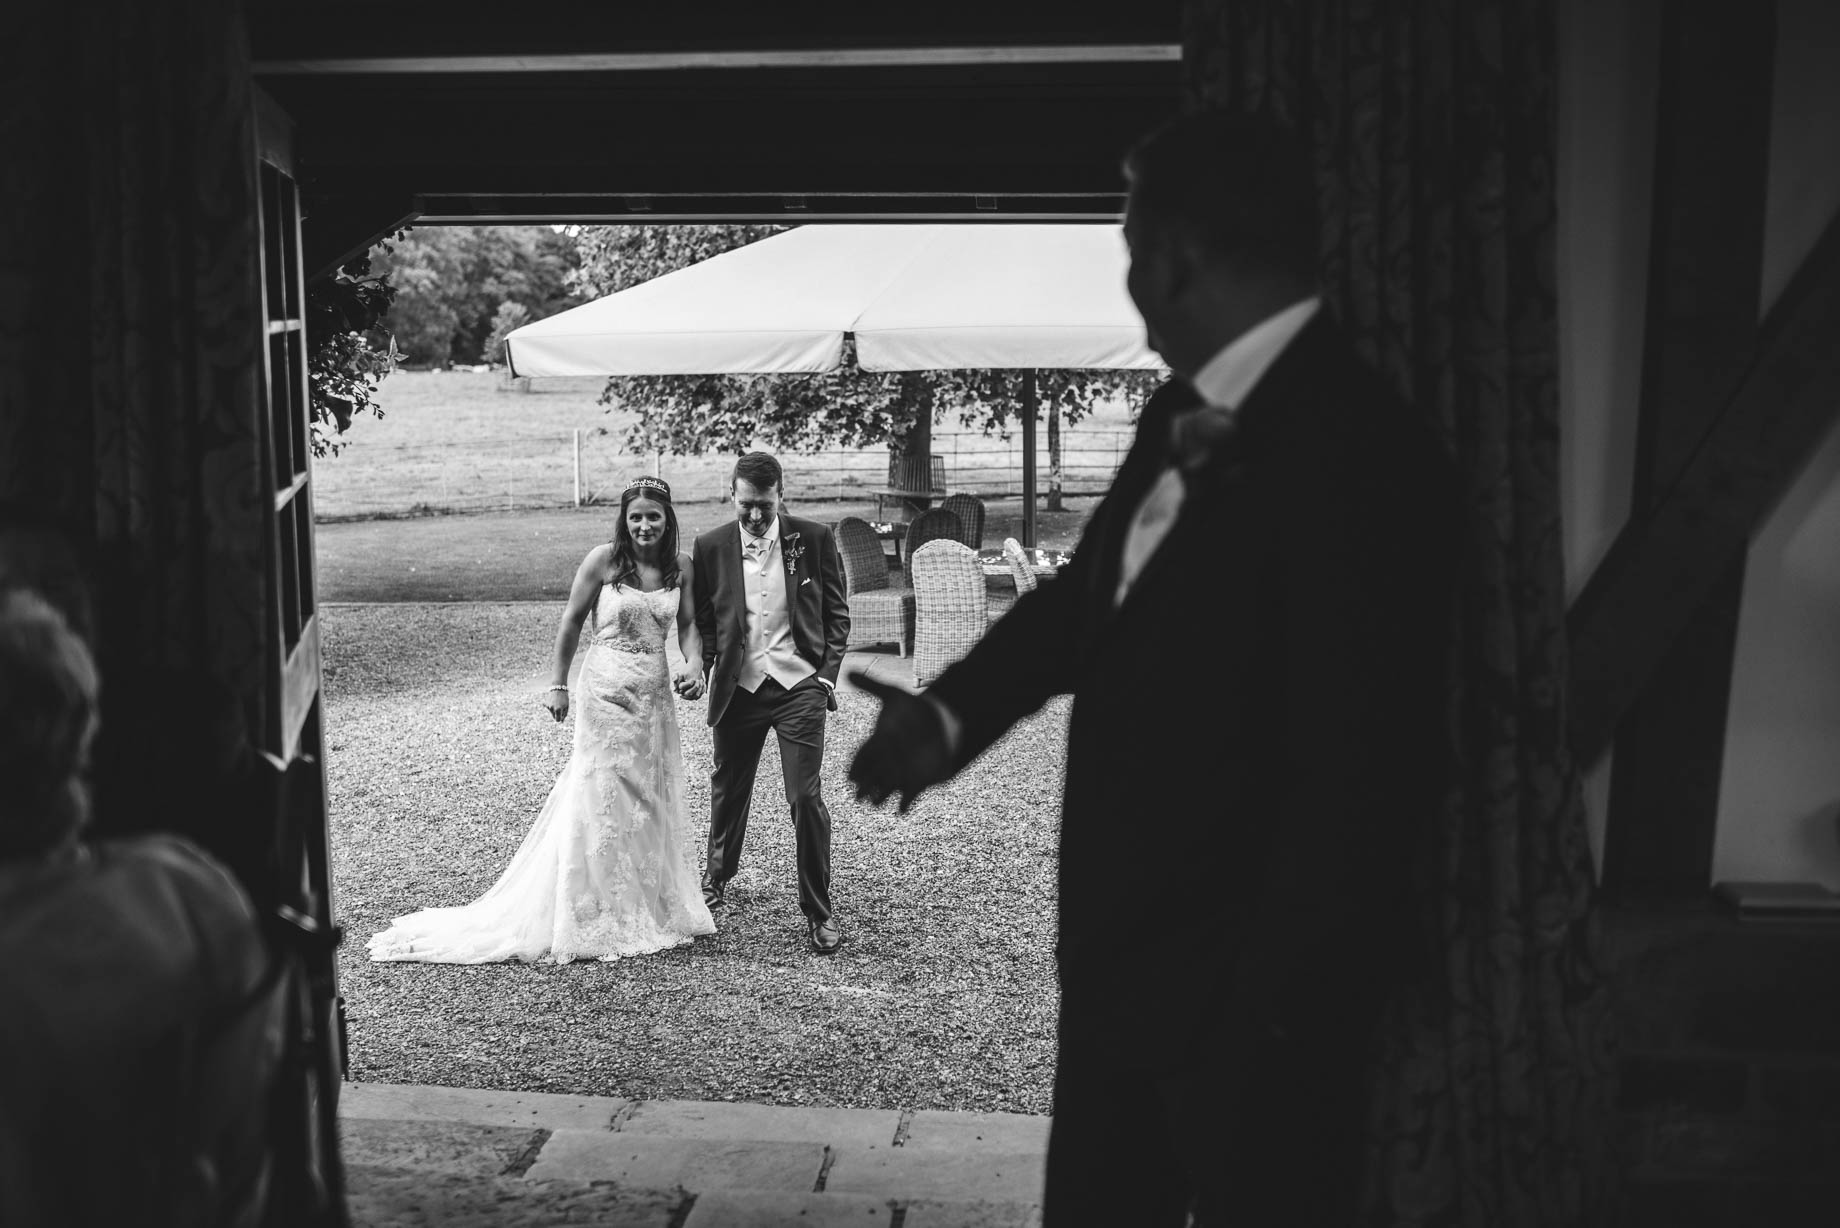 Gate Street Barn wedding photography - Guy Collier - Claire and Andy (124 of 192)